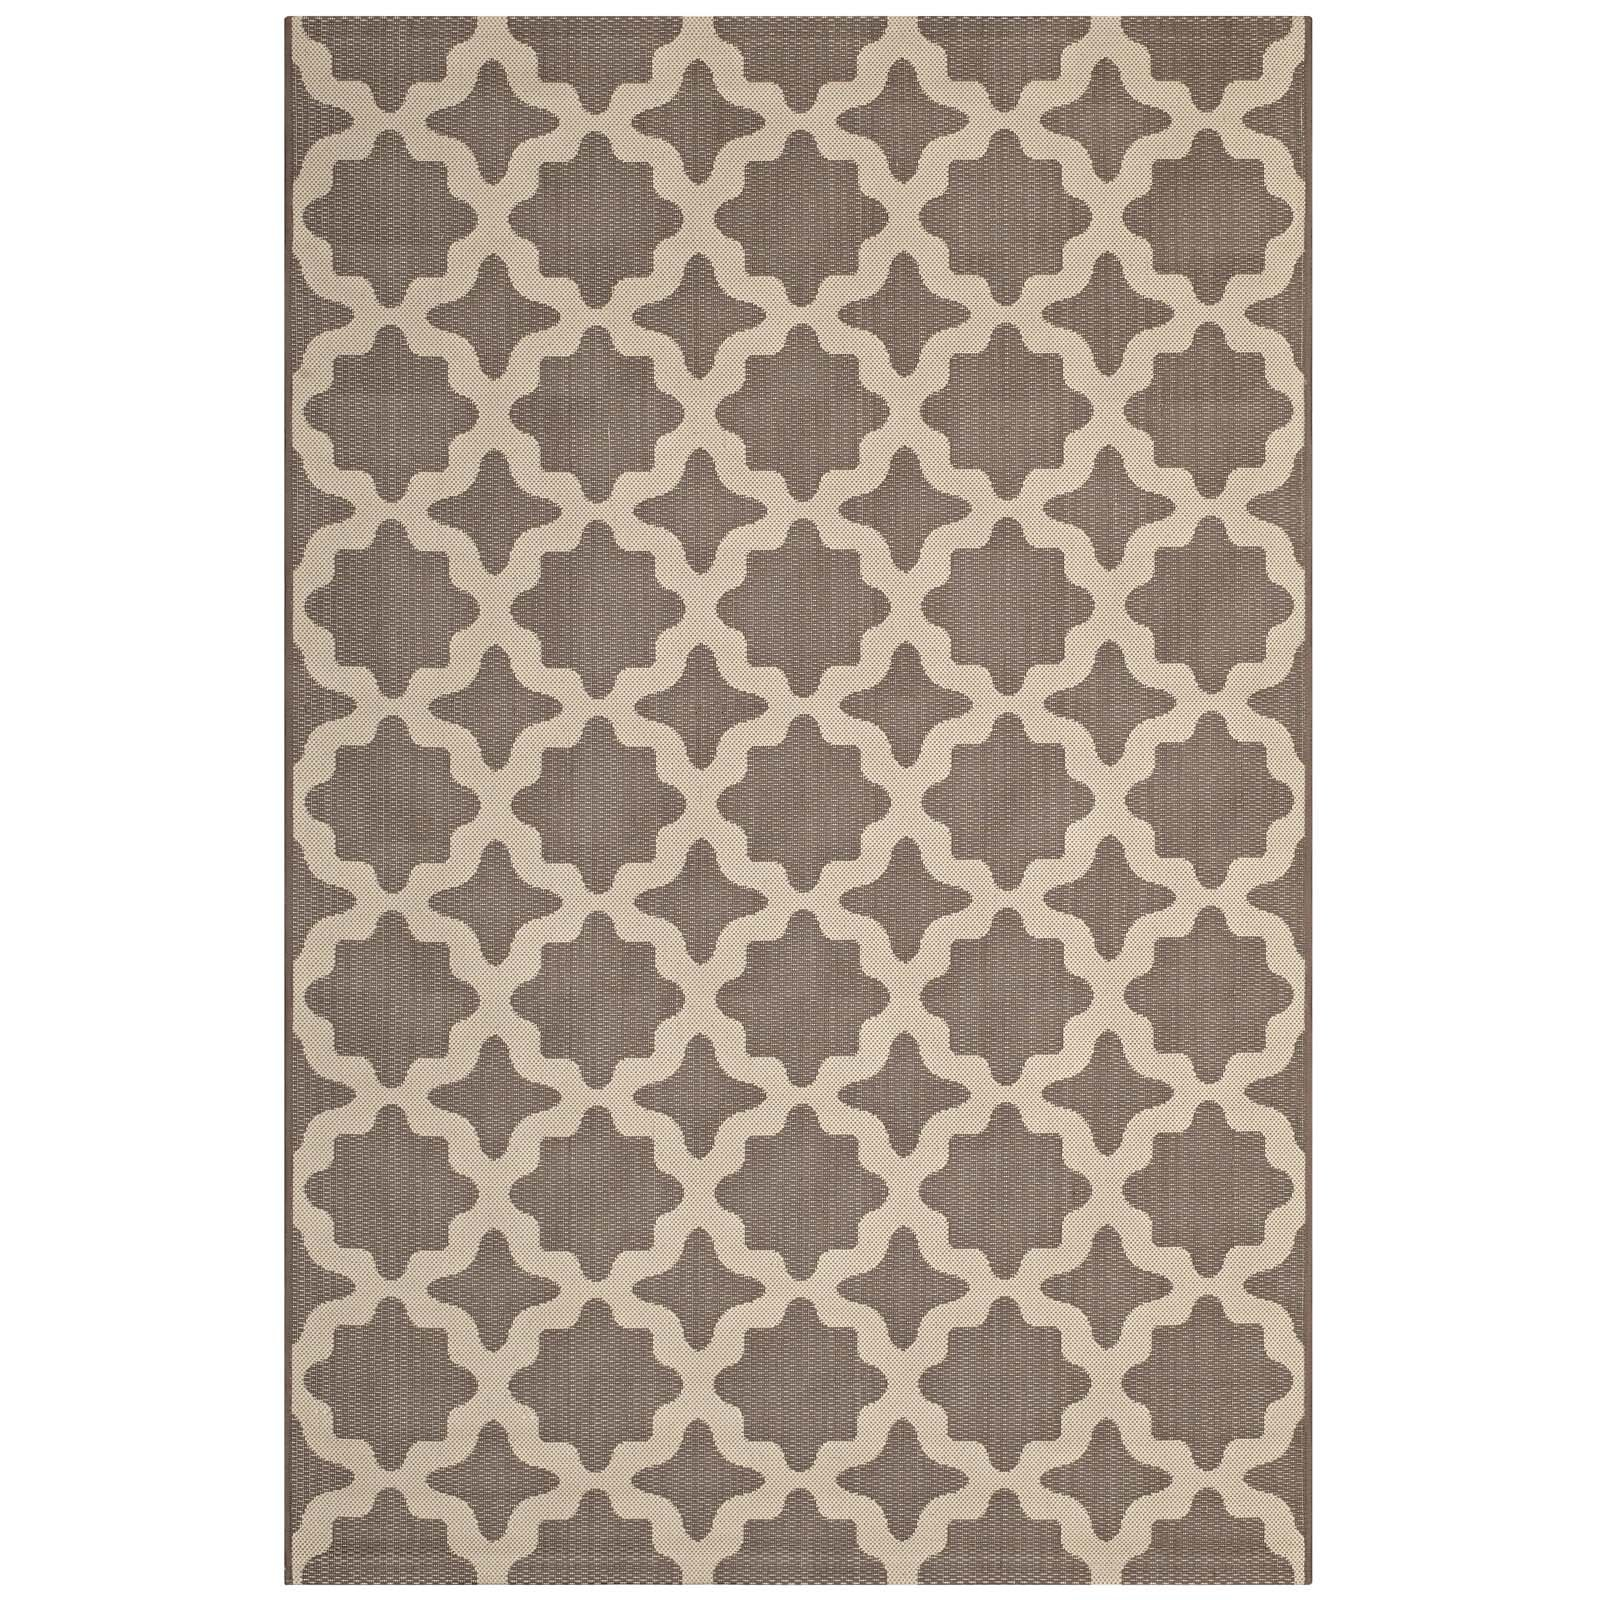 Modway R-1139A-810 Cerelia Moroccan Trellis 8x10 Indoor and Outdoor Area Rug, Twin, Beige and Light Green